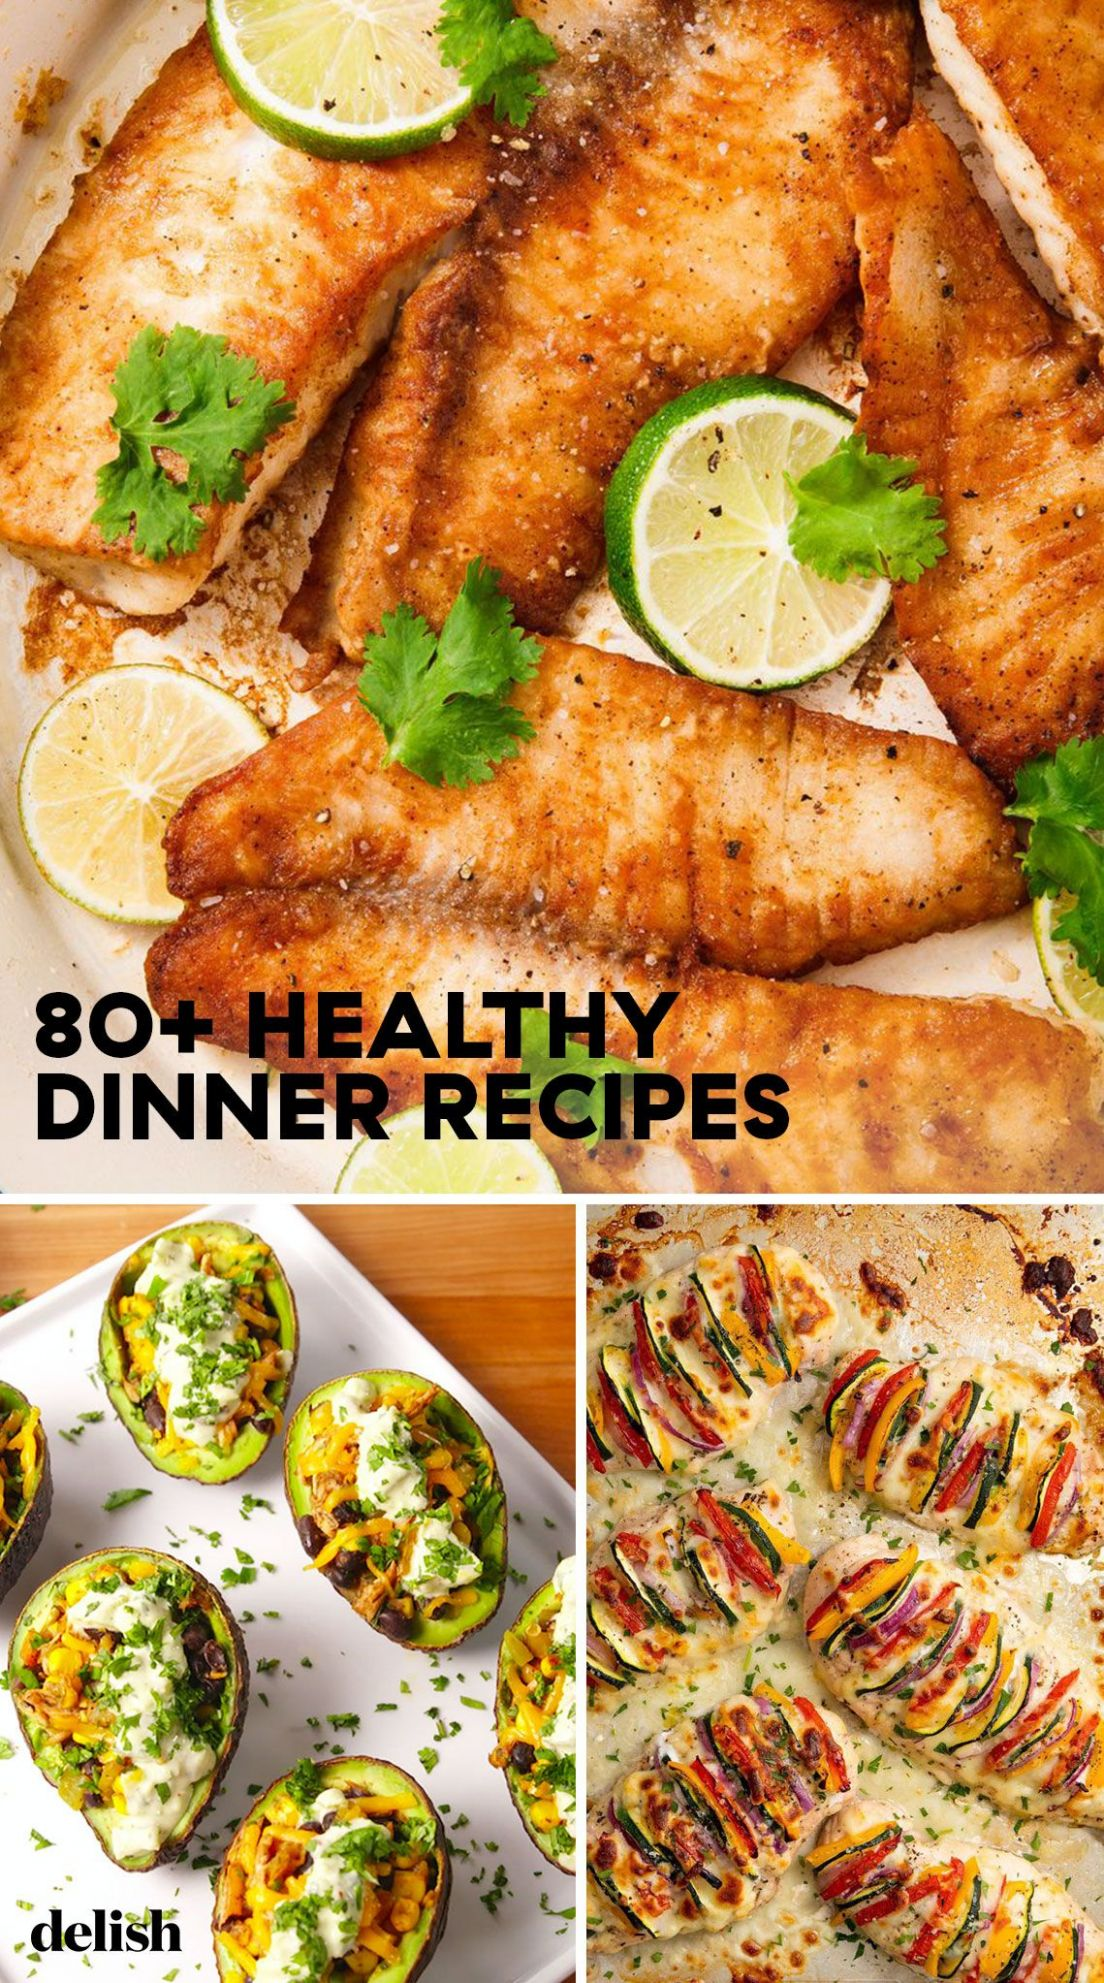 10+ Easy Healthy Dinner Ideas - Best Recipes for Healthy Dinners - Food Recipes Easy Healthy